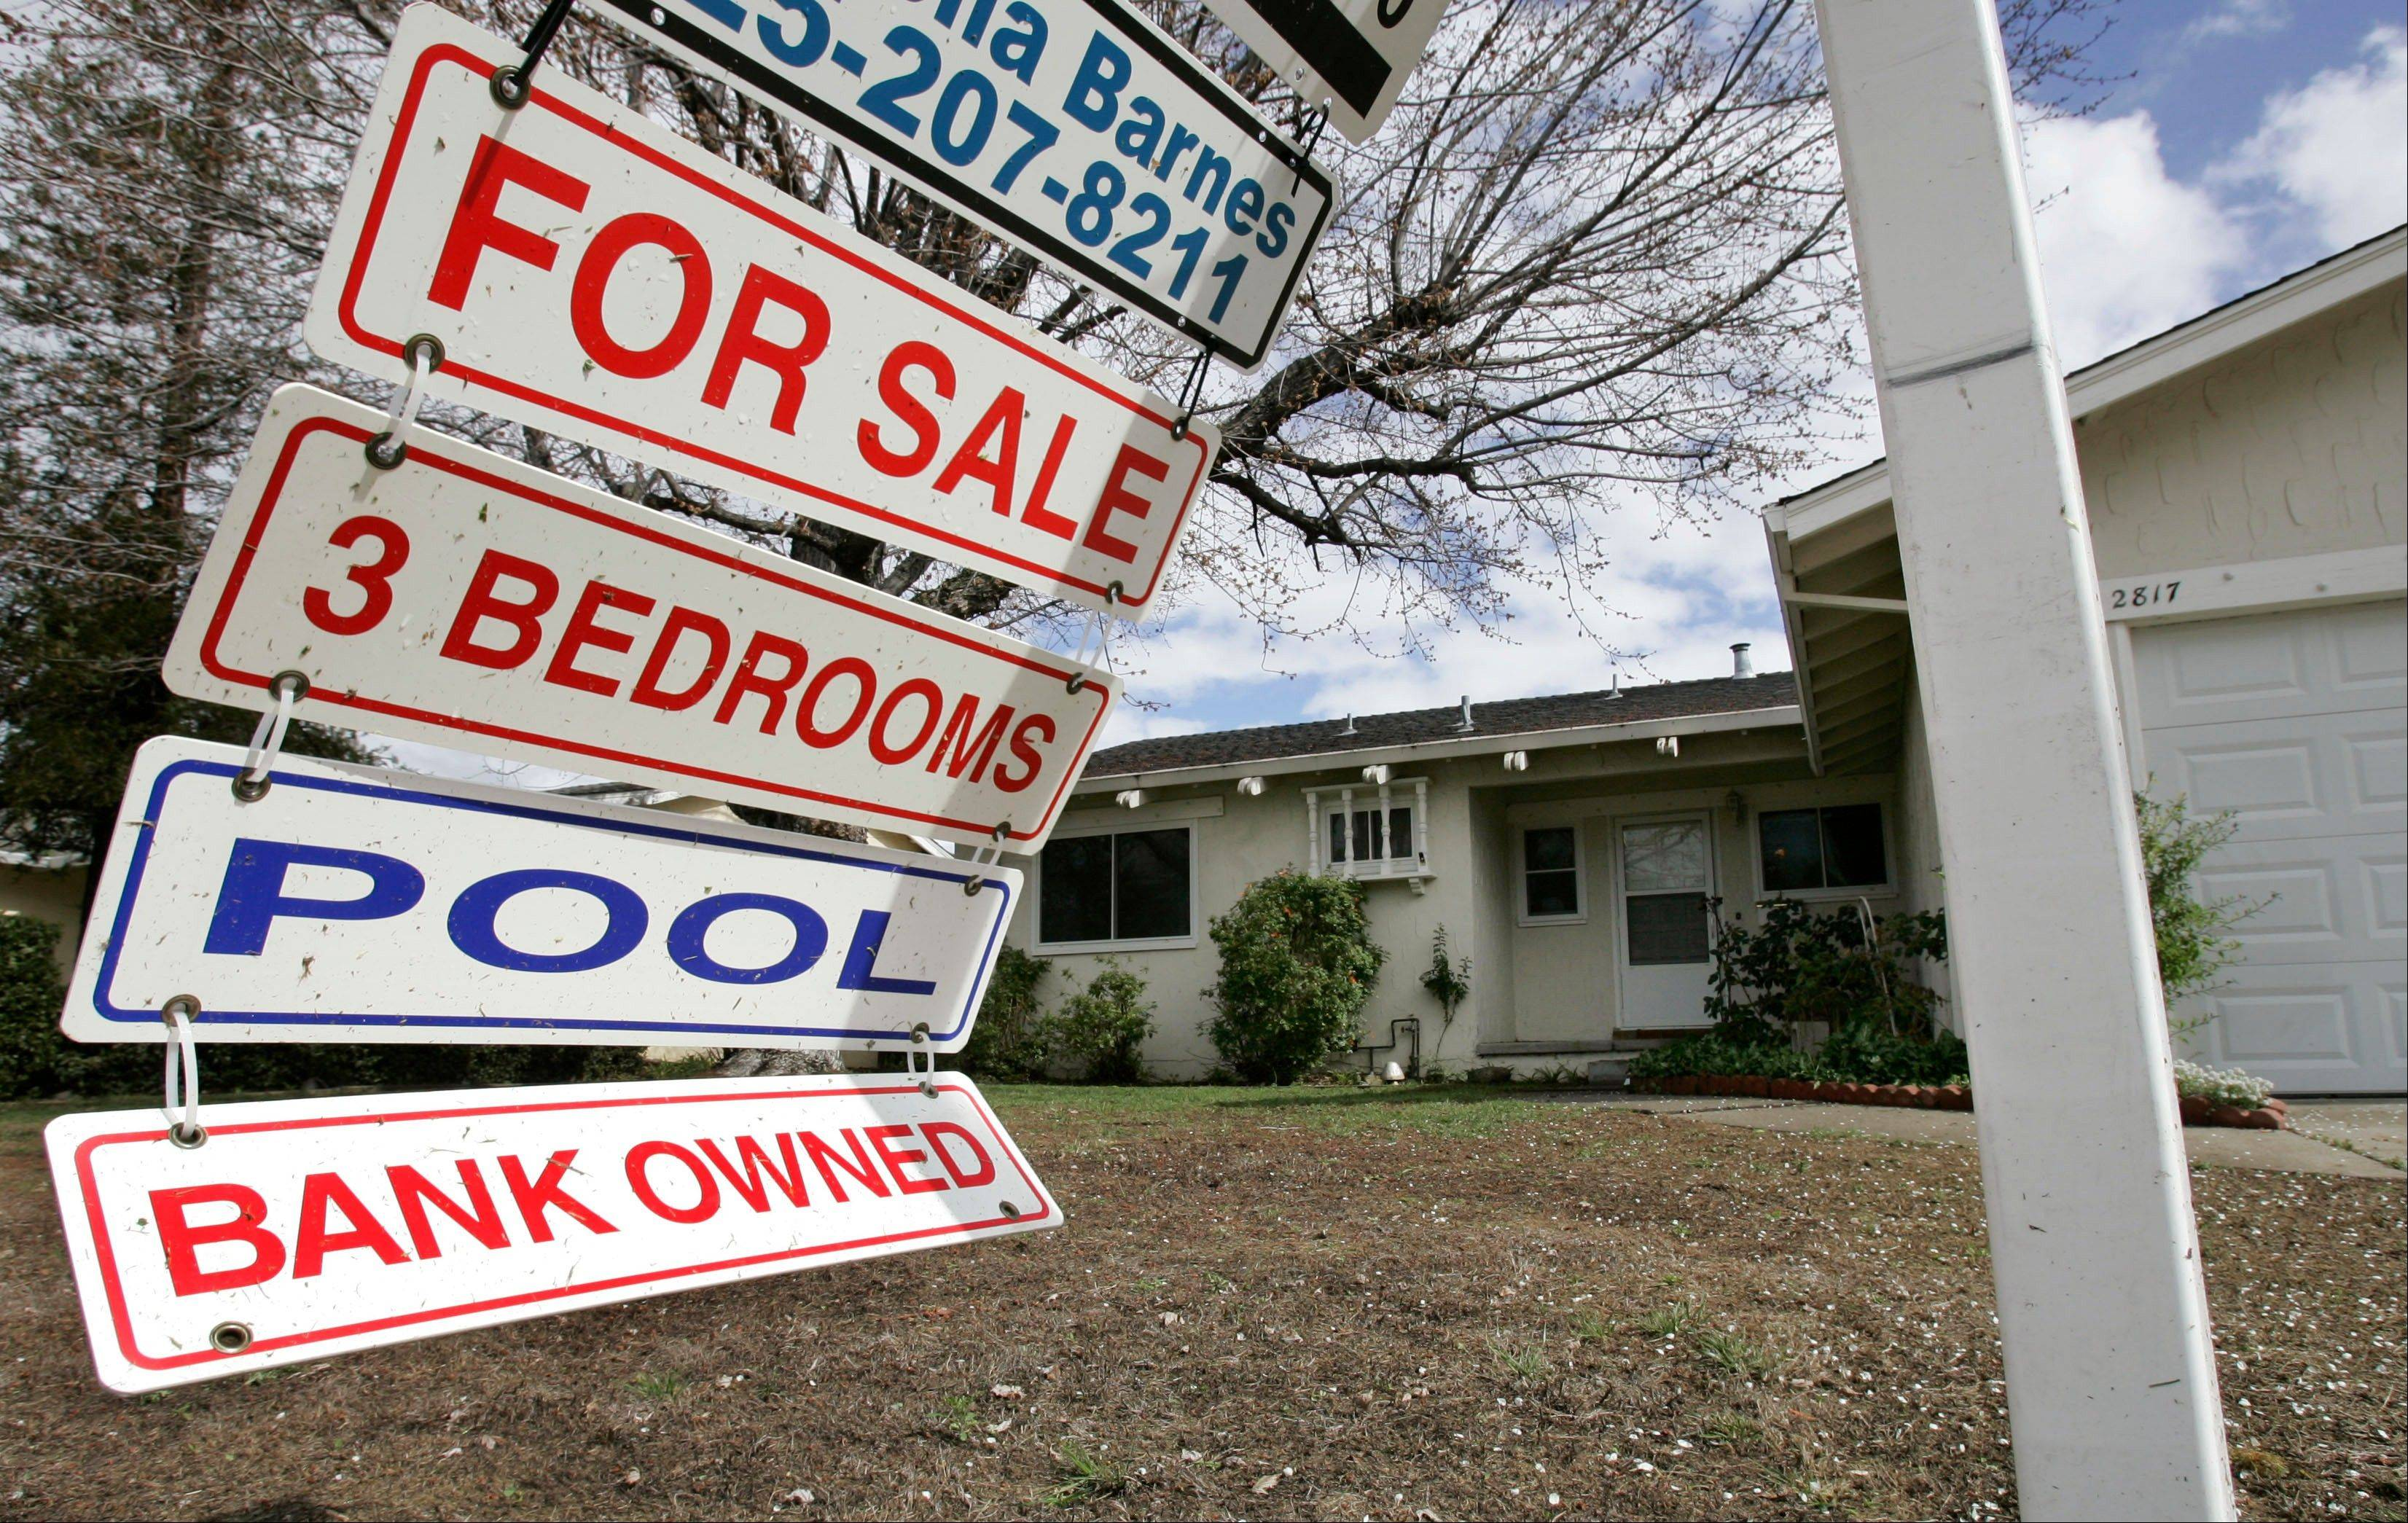 A foreclosure sign blows in the wind in front of a home under foreclosure in Antioch, Calif.